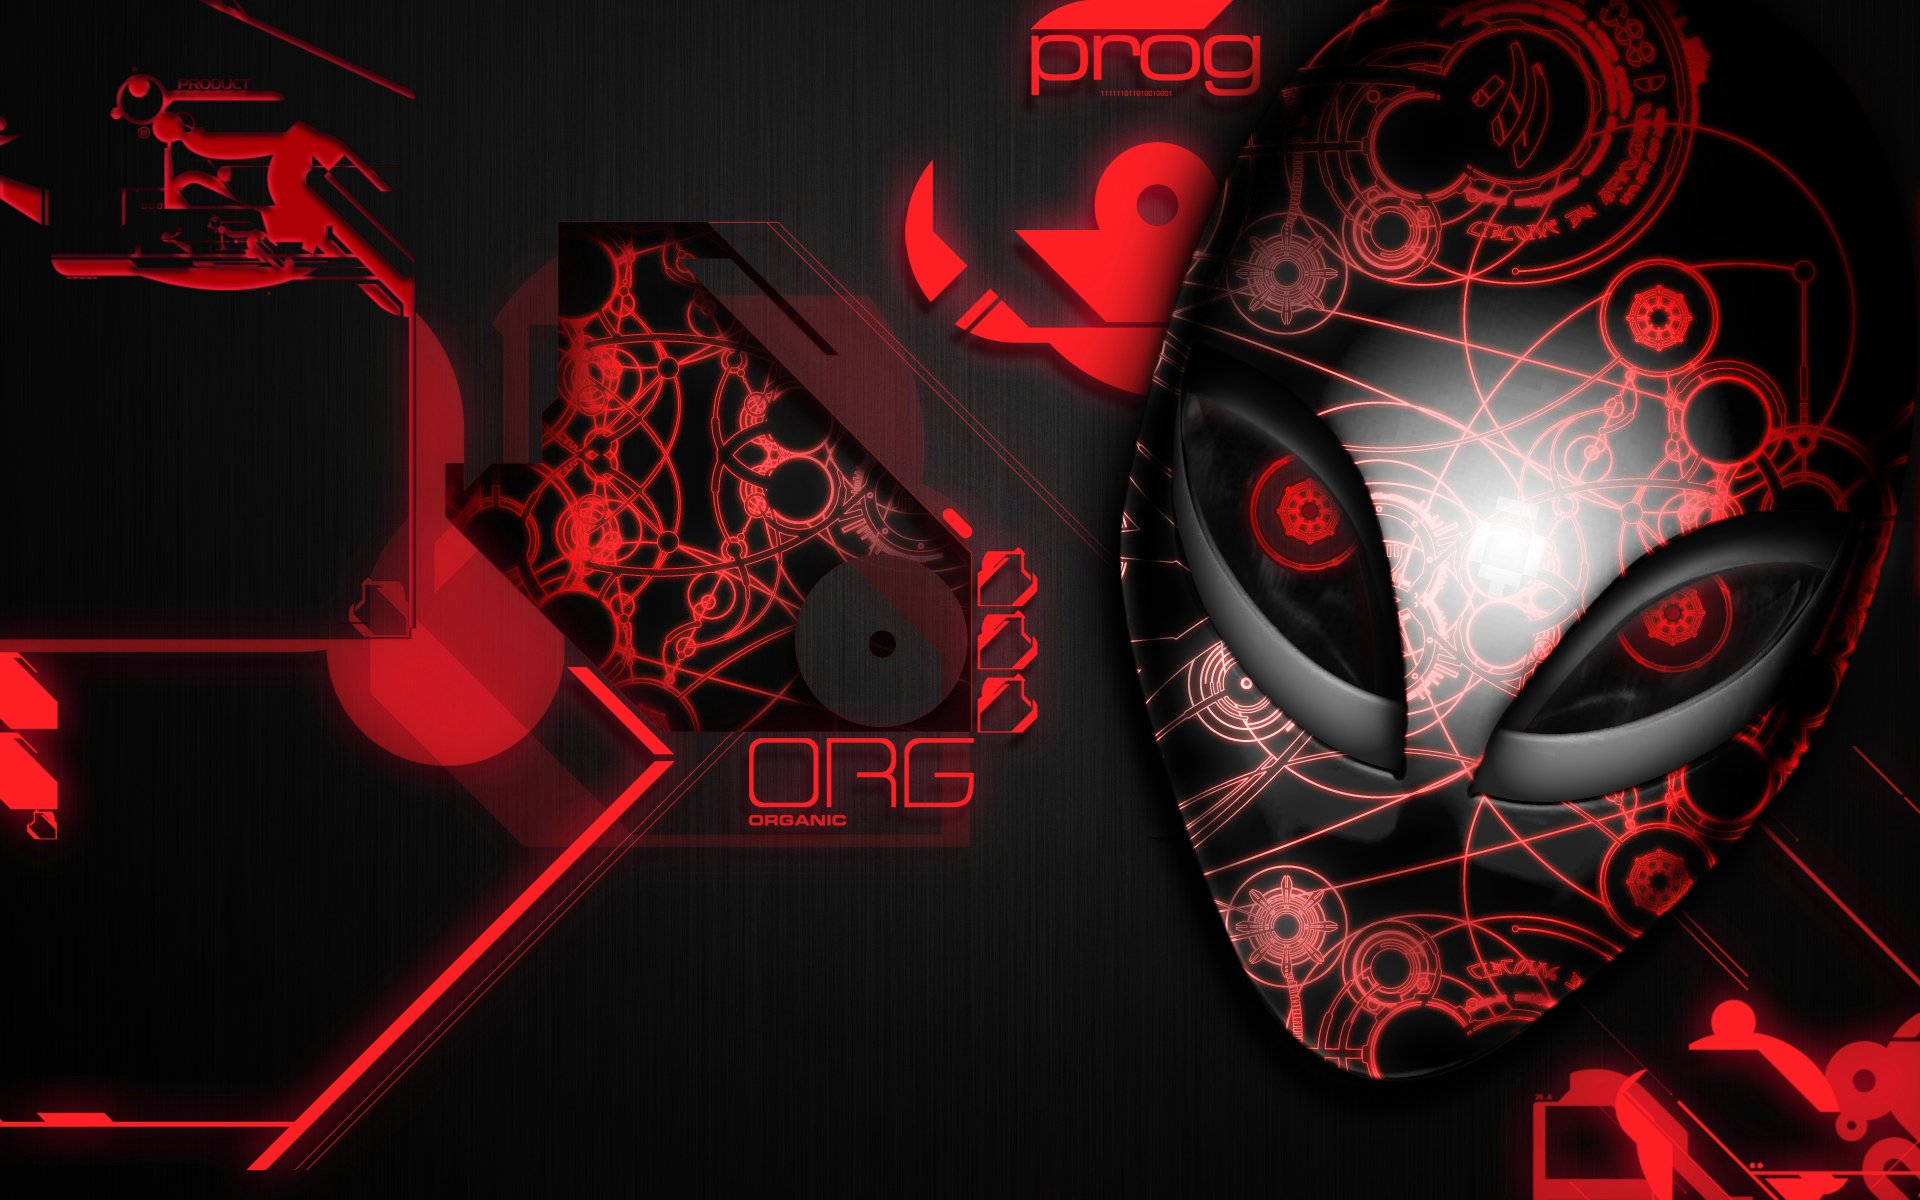 Comments to HD Alienware Wallpapers 19201080 Alienware Backgrounds